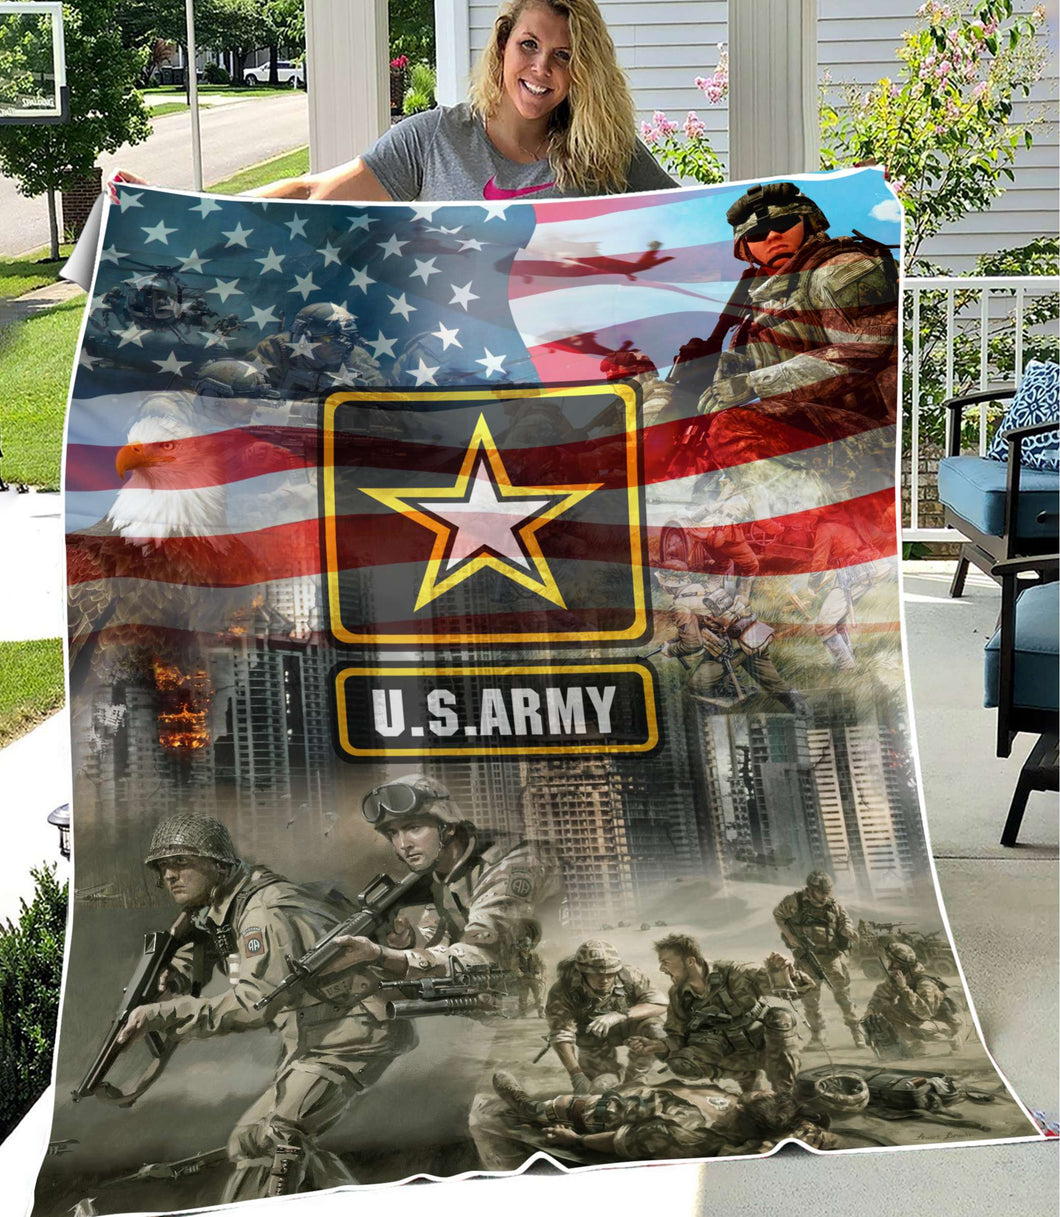 BeKingArt 3D Veteran U.S Army Proud Military